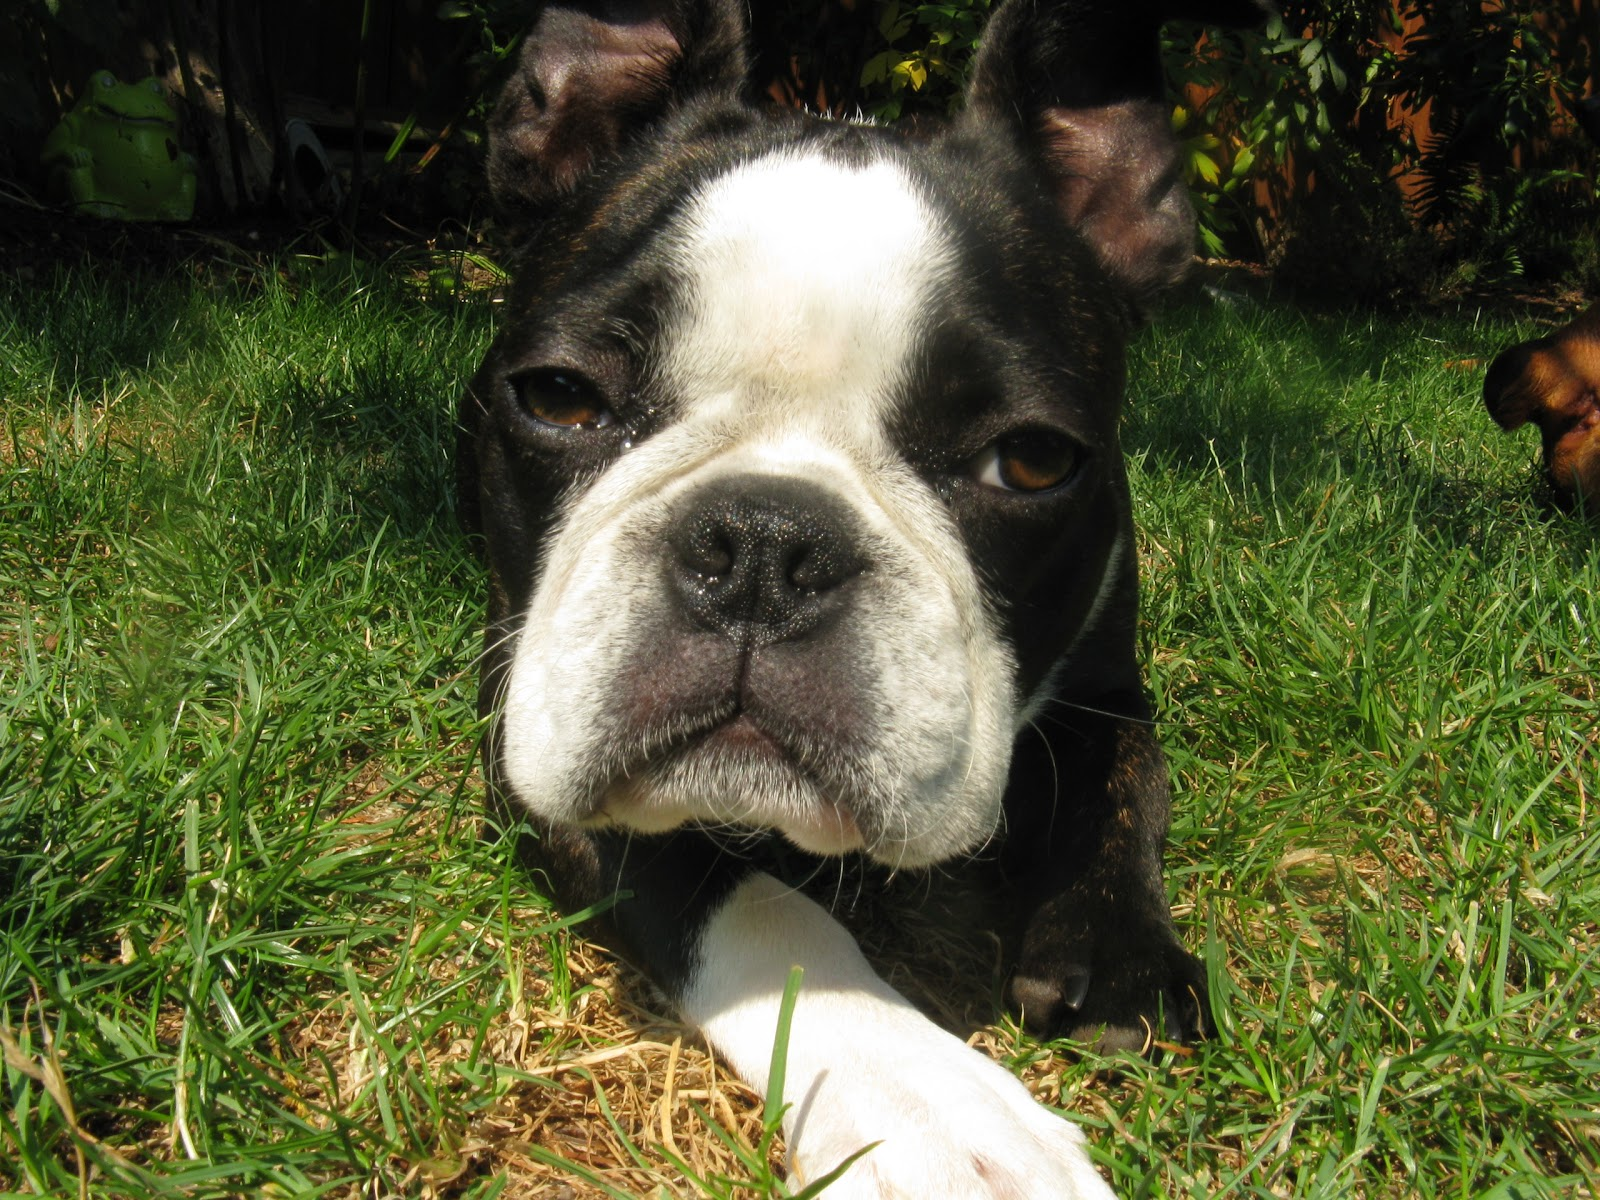 ... Dog Blog: Adorable Boston Terrier and French Bulldog Cross Needs Home